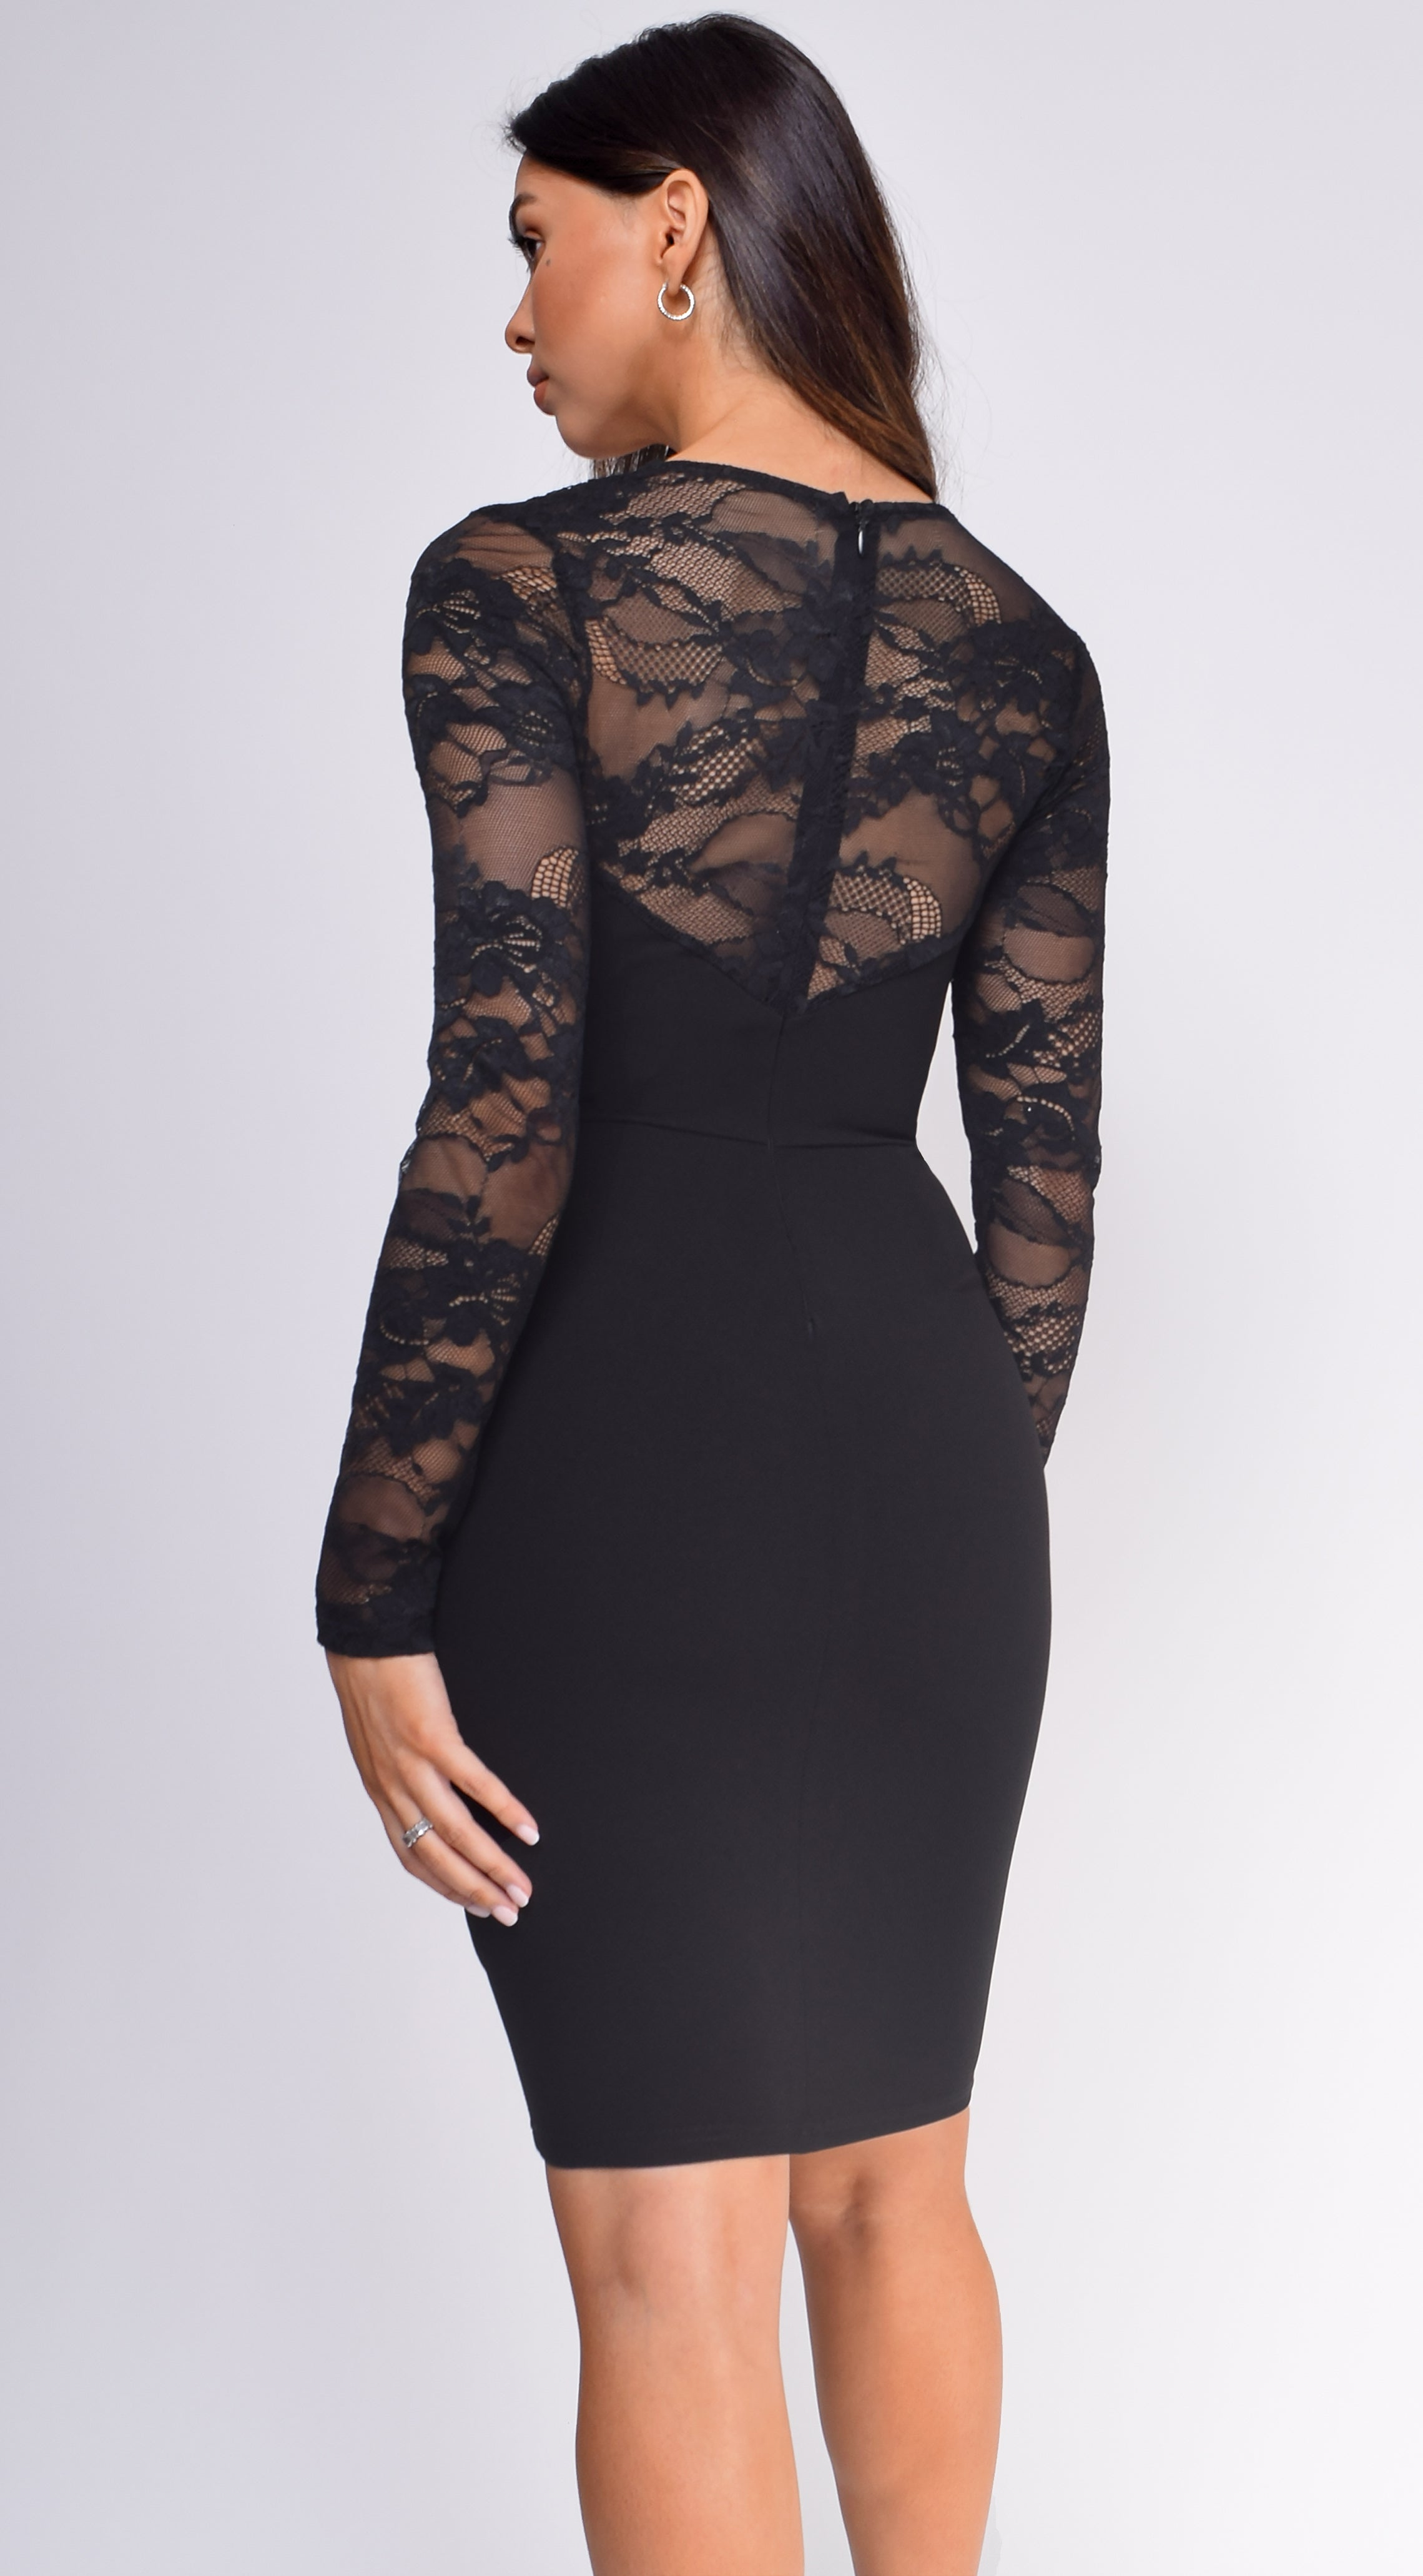 Amancia Black Bustier Lace Dress